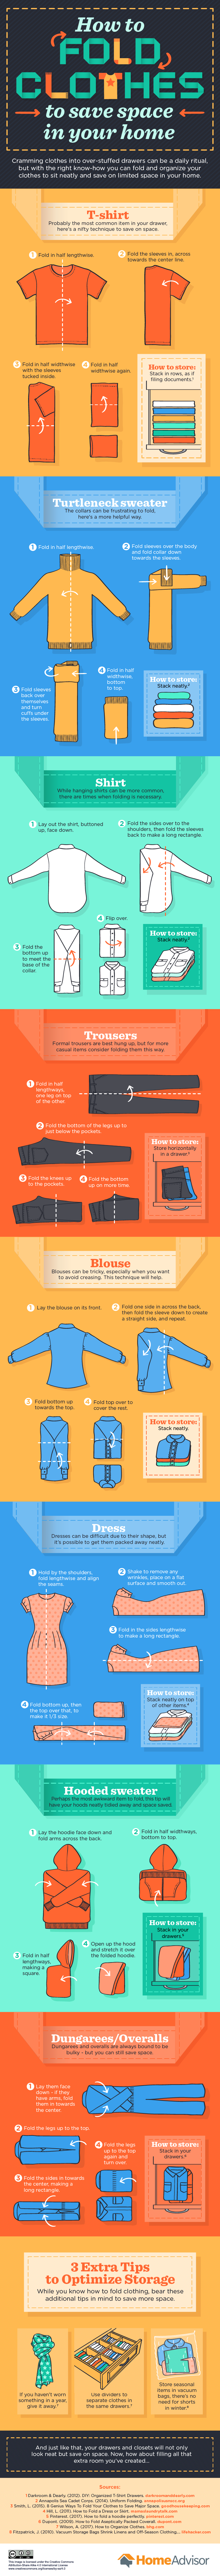 http://www.homeadvisor.com/r/wp-content/uploads/2017/03/How-to-fold-clothes-to-save-space.png